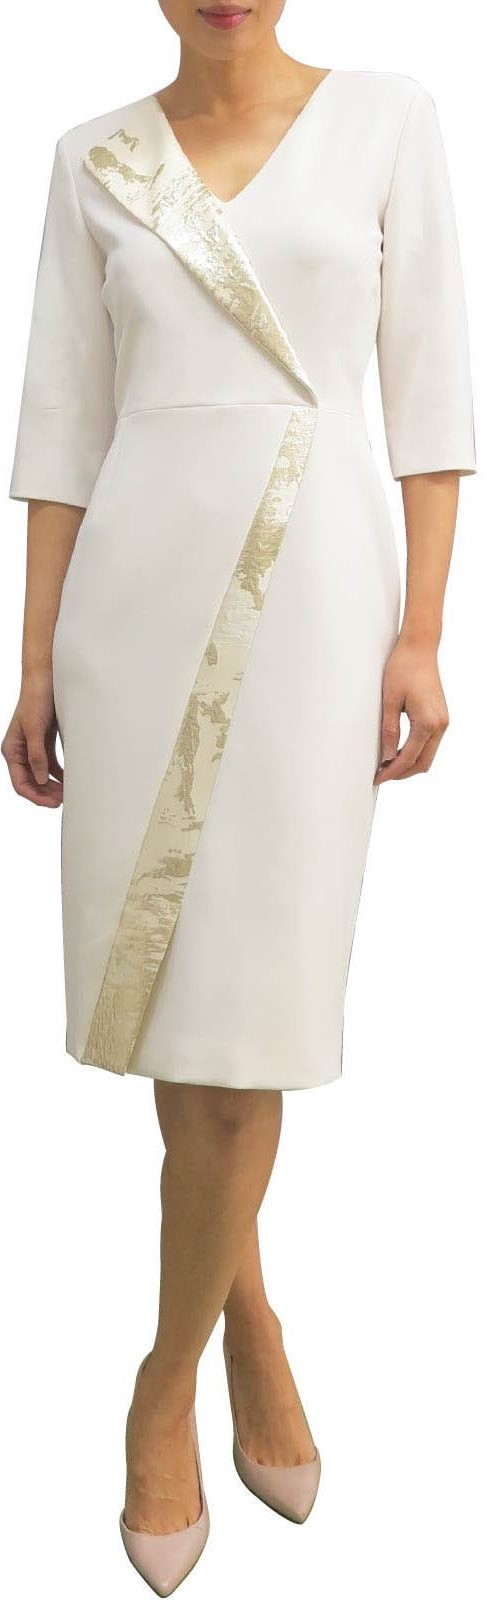 Fee G Cream and Gold Tuxedo Style Dress